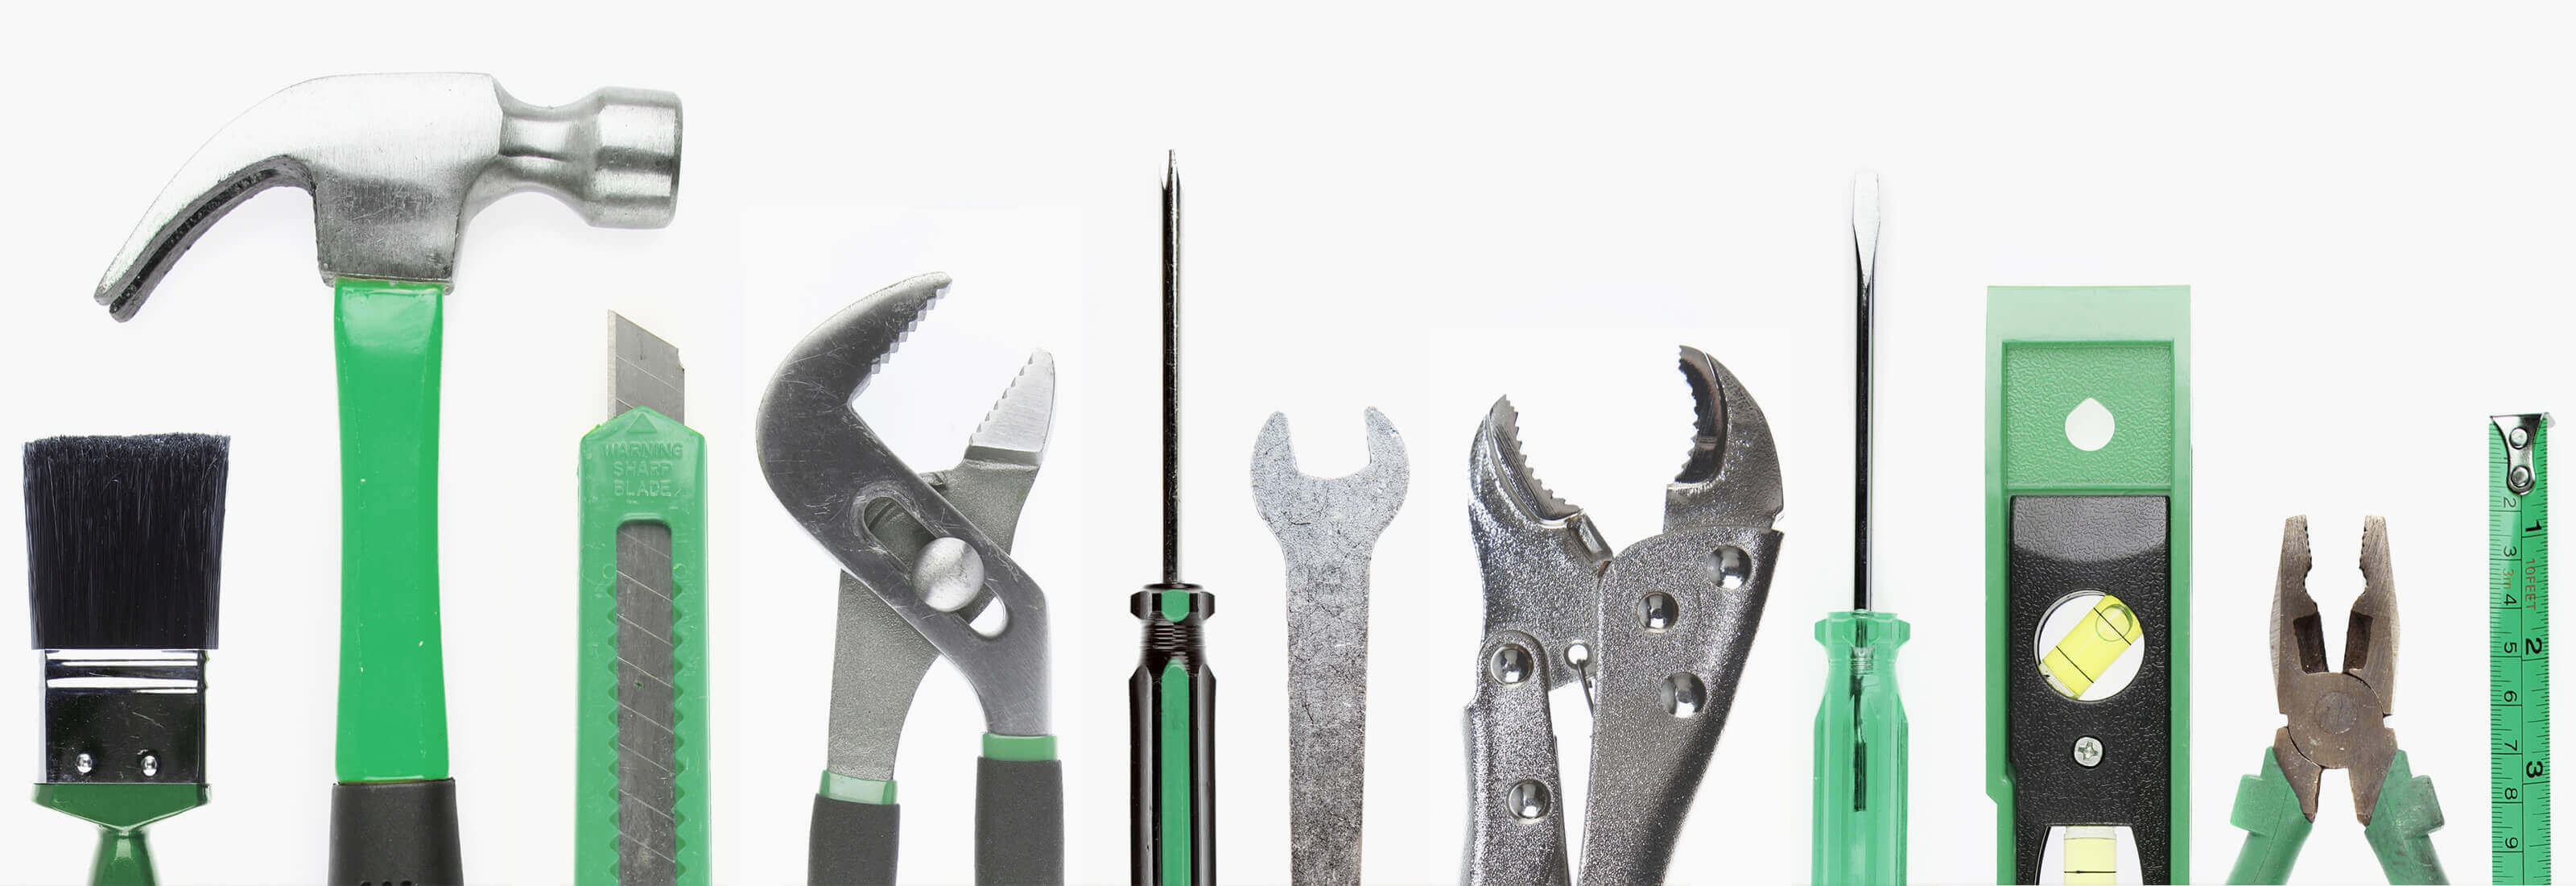 Repairs and Maintenance Tools